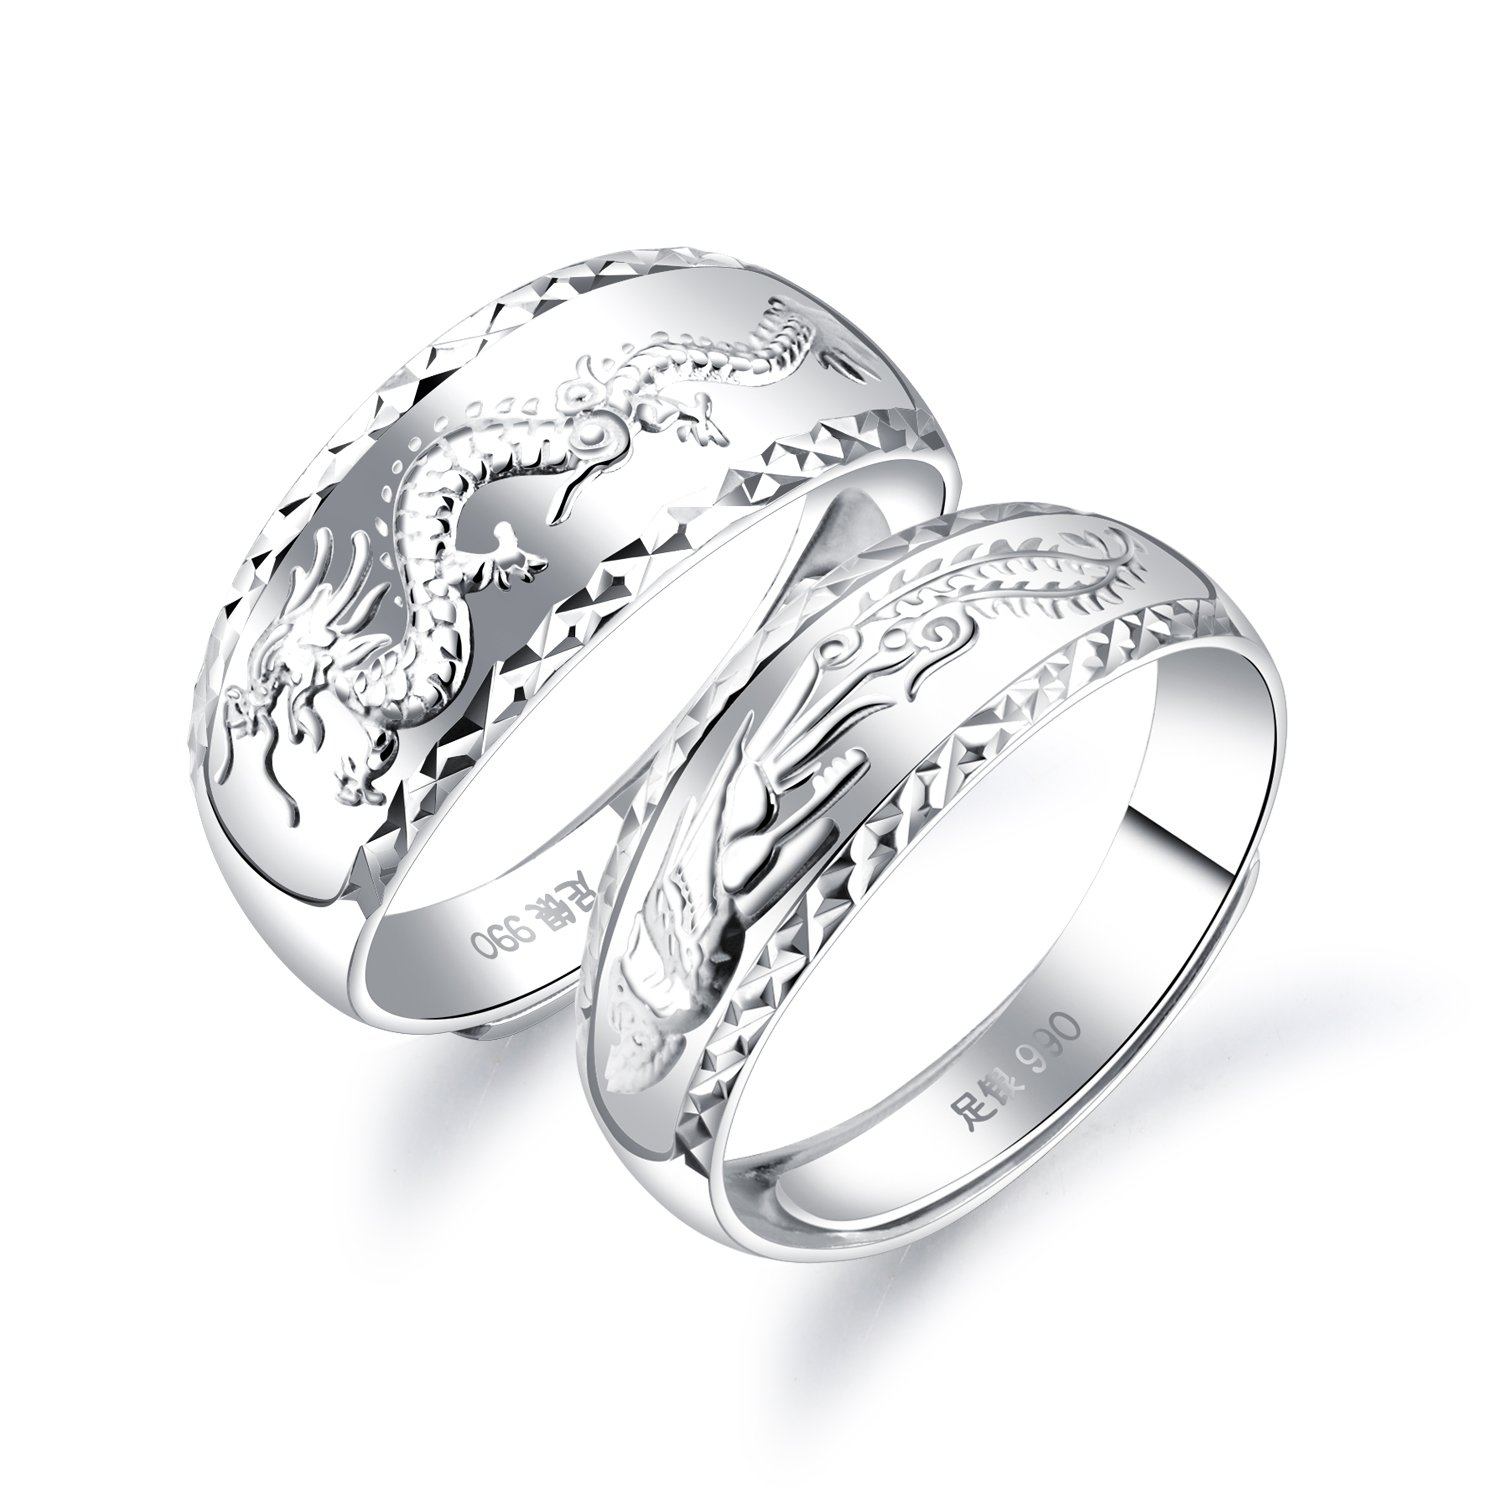 Fate Love 990 Silver Chinese Feature Lucky Dragon Phoenix Carved Couple Ring Wedding Band Set Adjustable Size